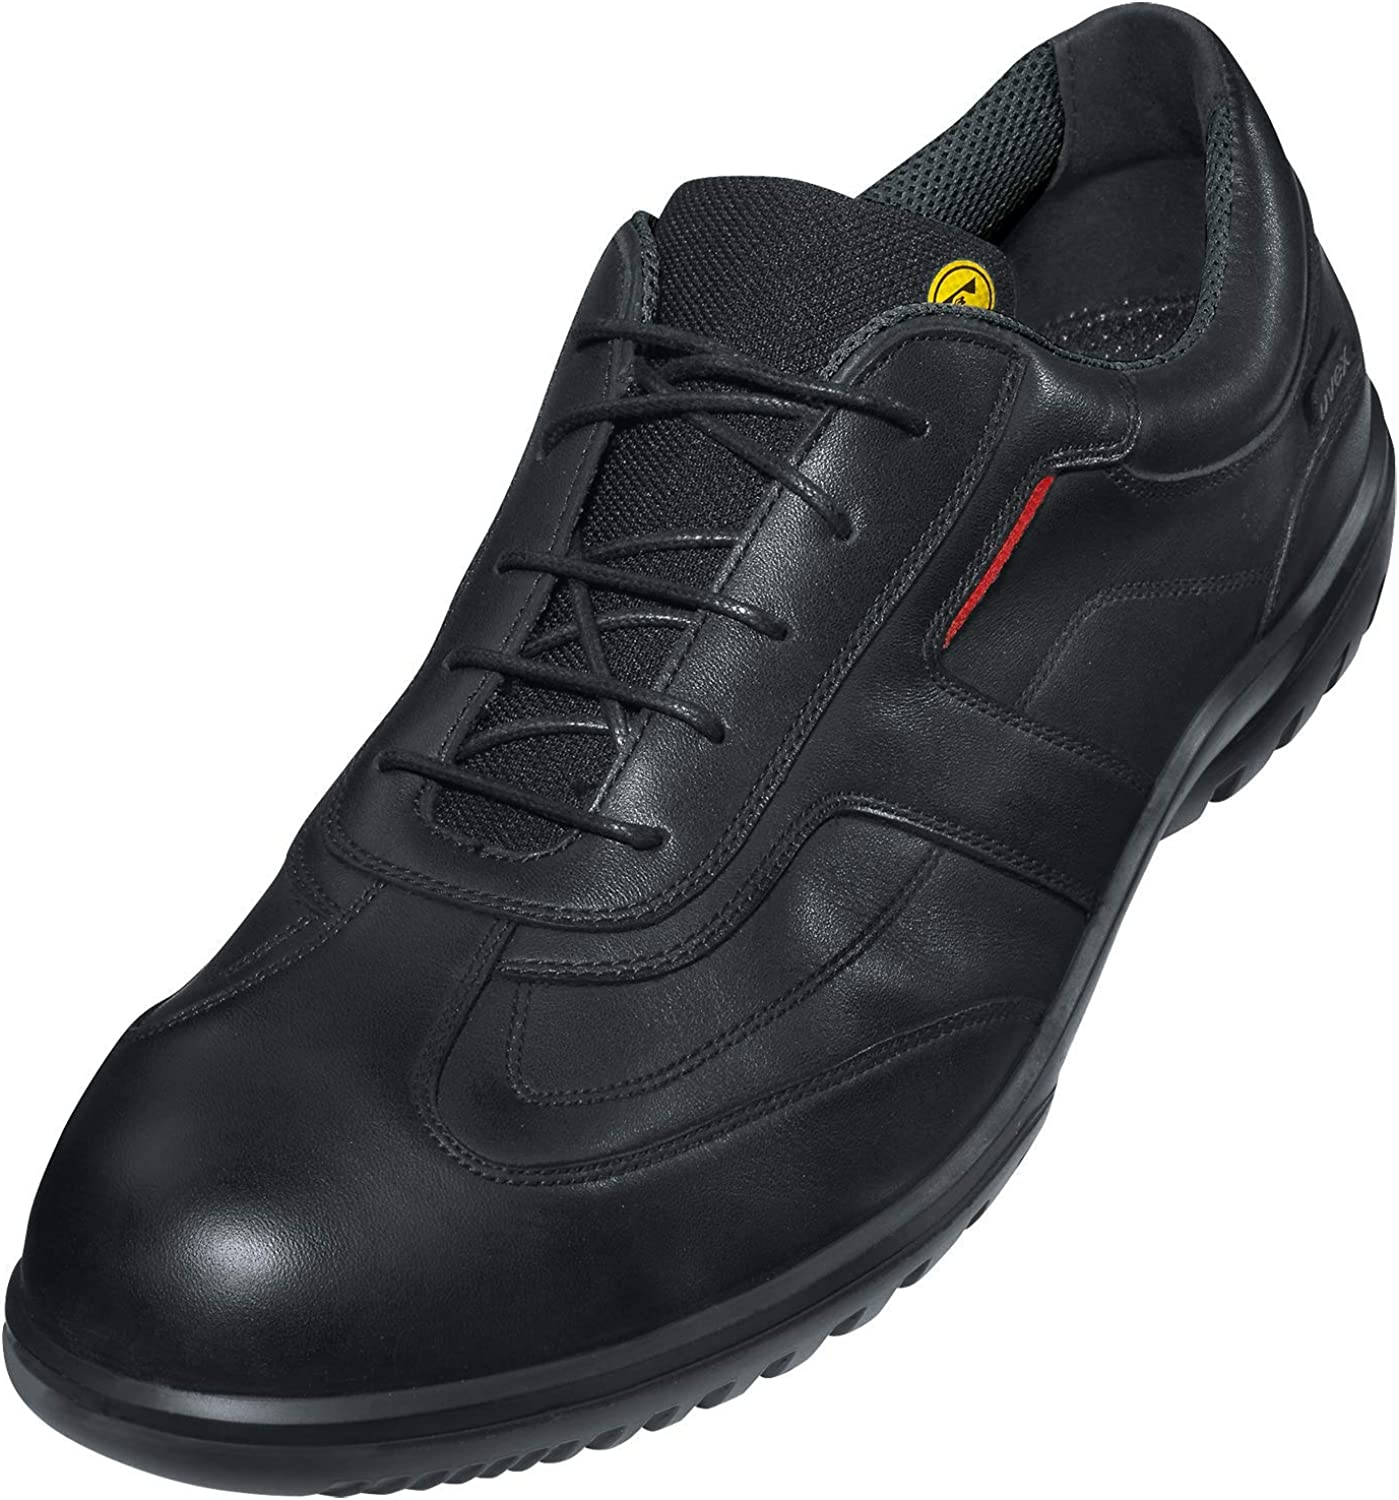 Uvex Business Casual Work Shoe - Safety